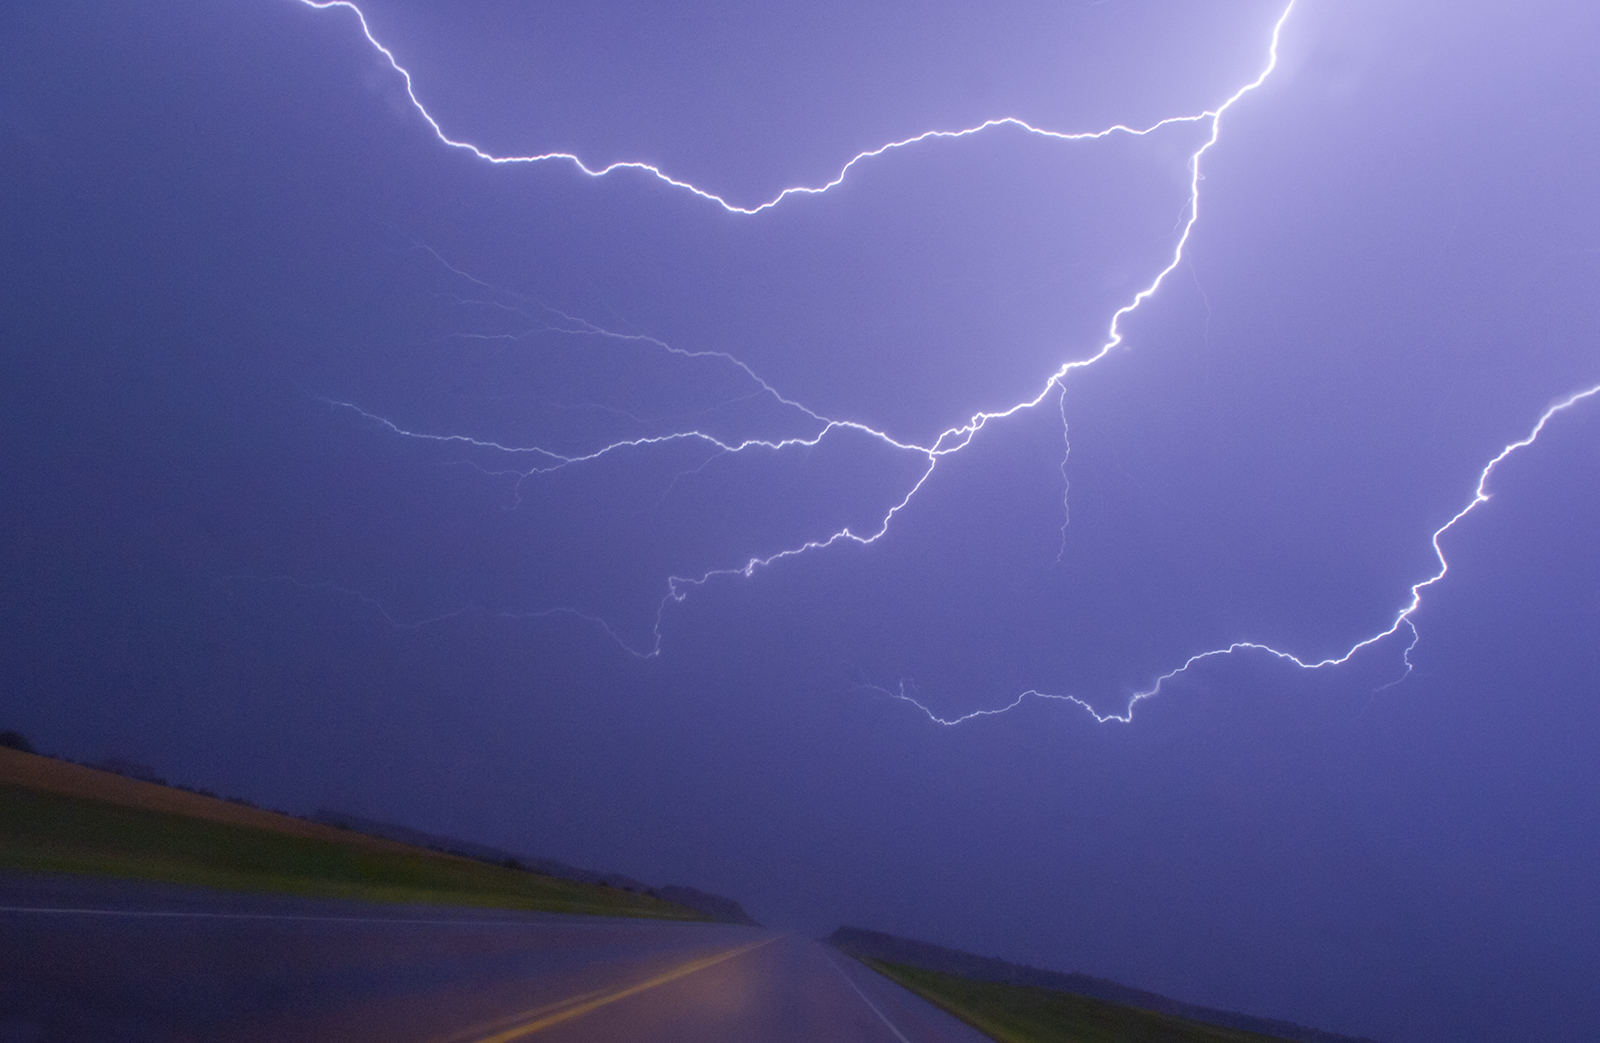 """Lightning Over Road, Oklahoma, 2005"" -- Lightning wriggles over a highway in north central Oklahoma on June 16, 2005."